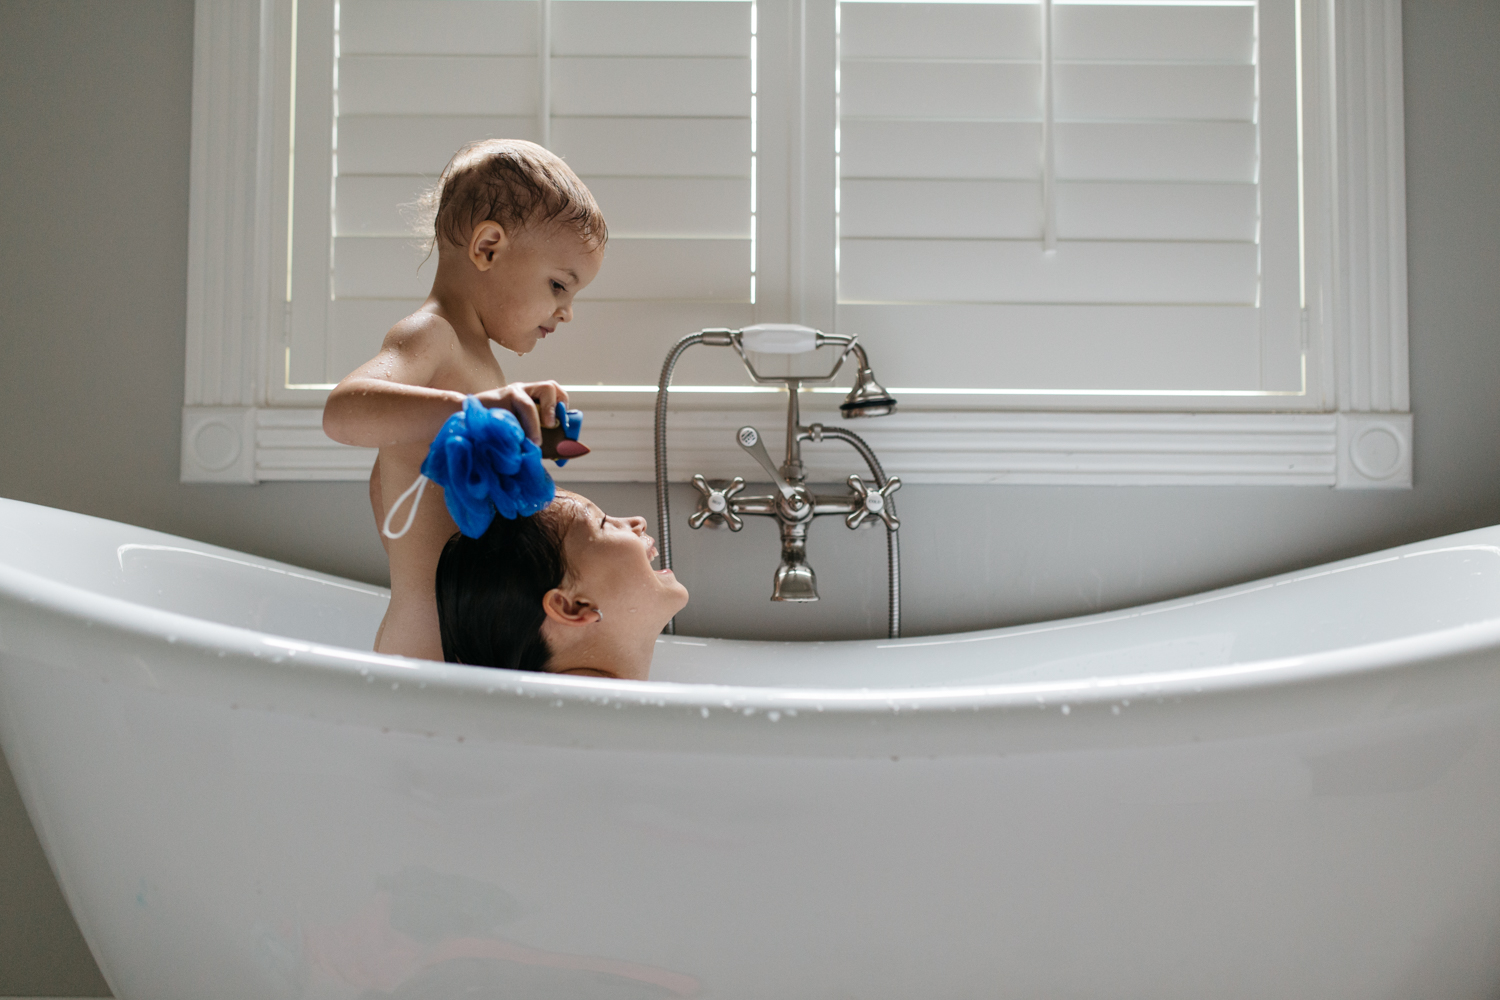 Siblings in Clawfoot Tub Orlando Documentary Photographer.jpg